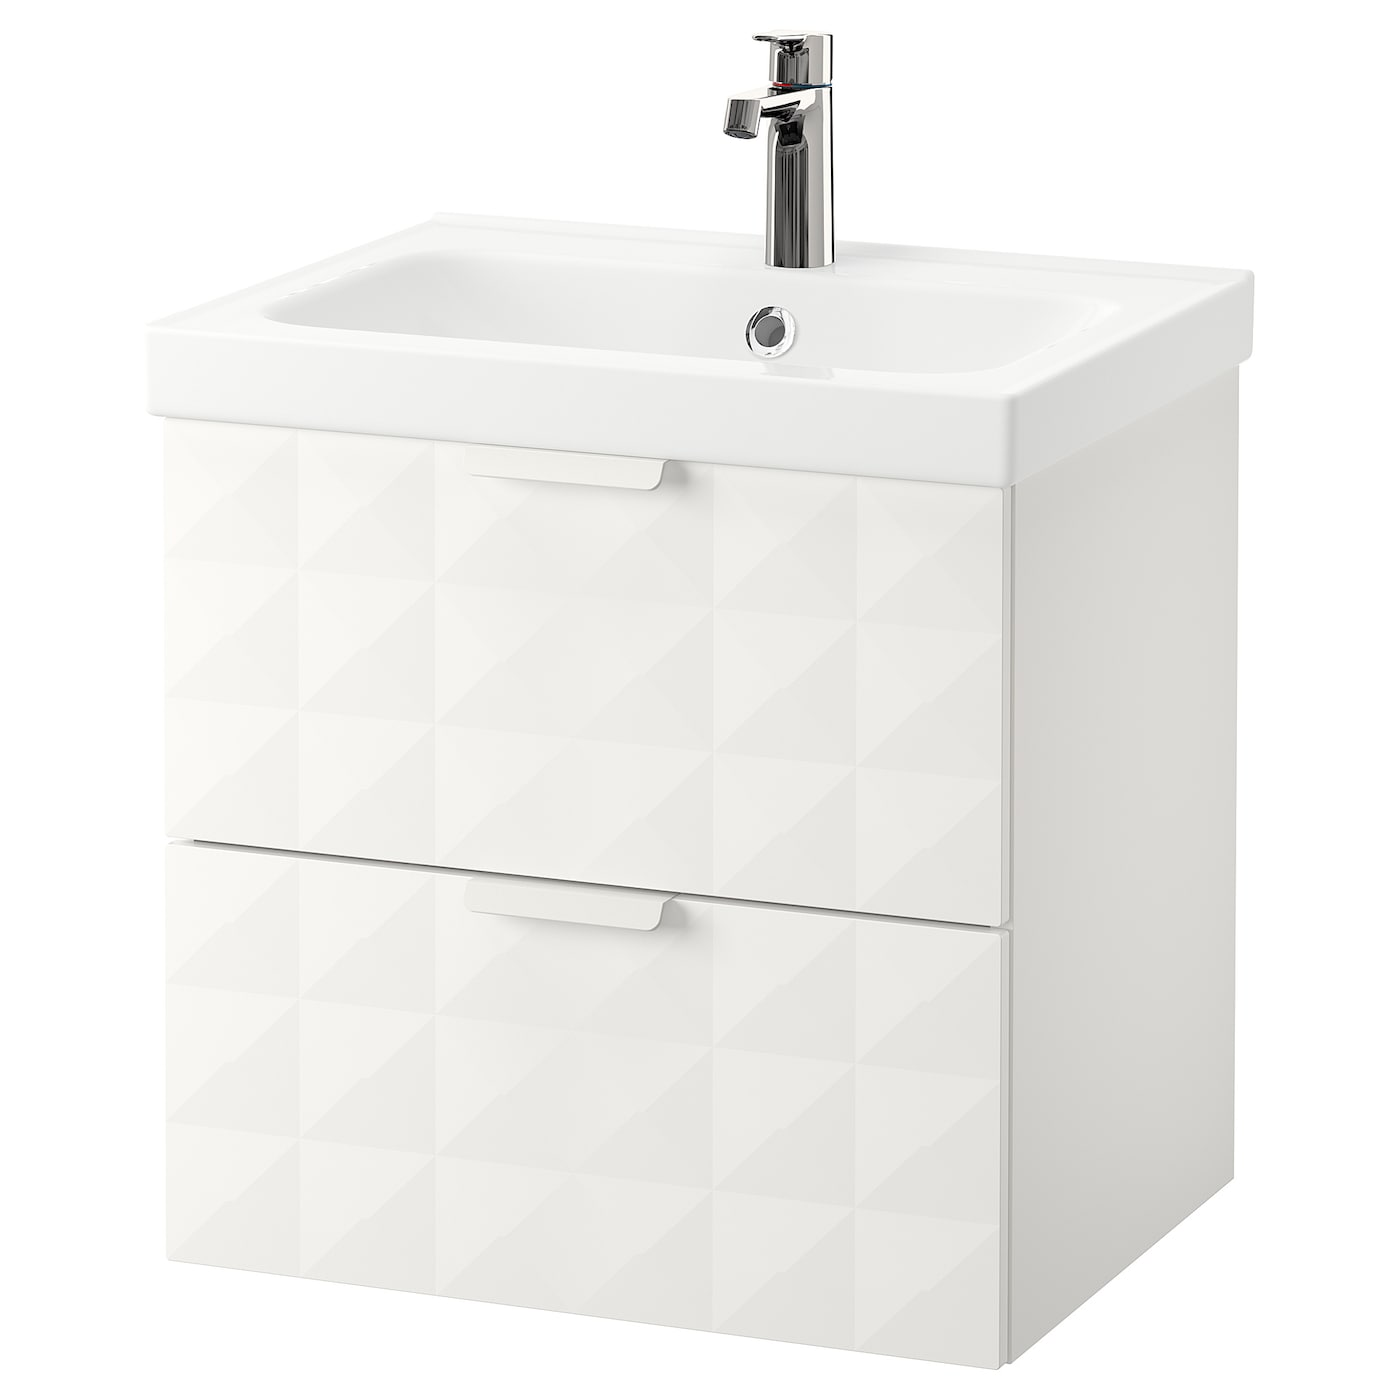 bathroom sink with drawers odensvik godmorgon wash stand with 2 drawers resj 246 n white 16618